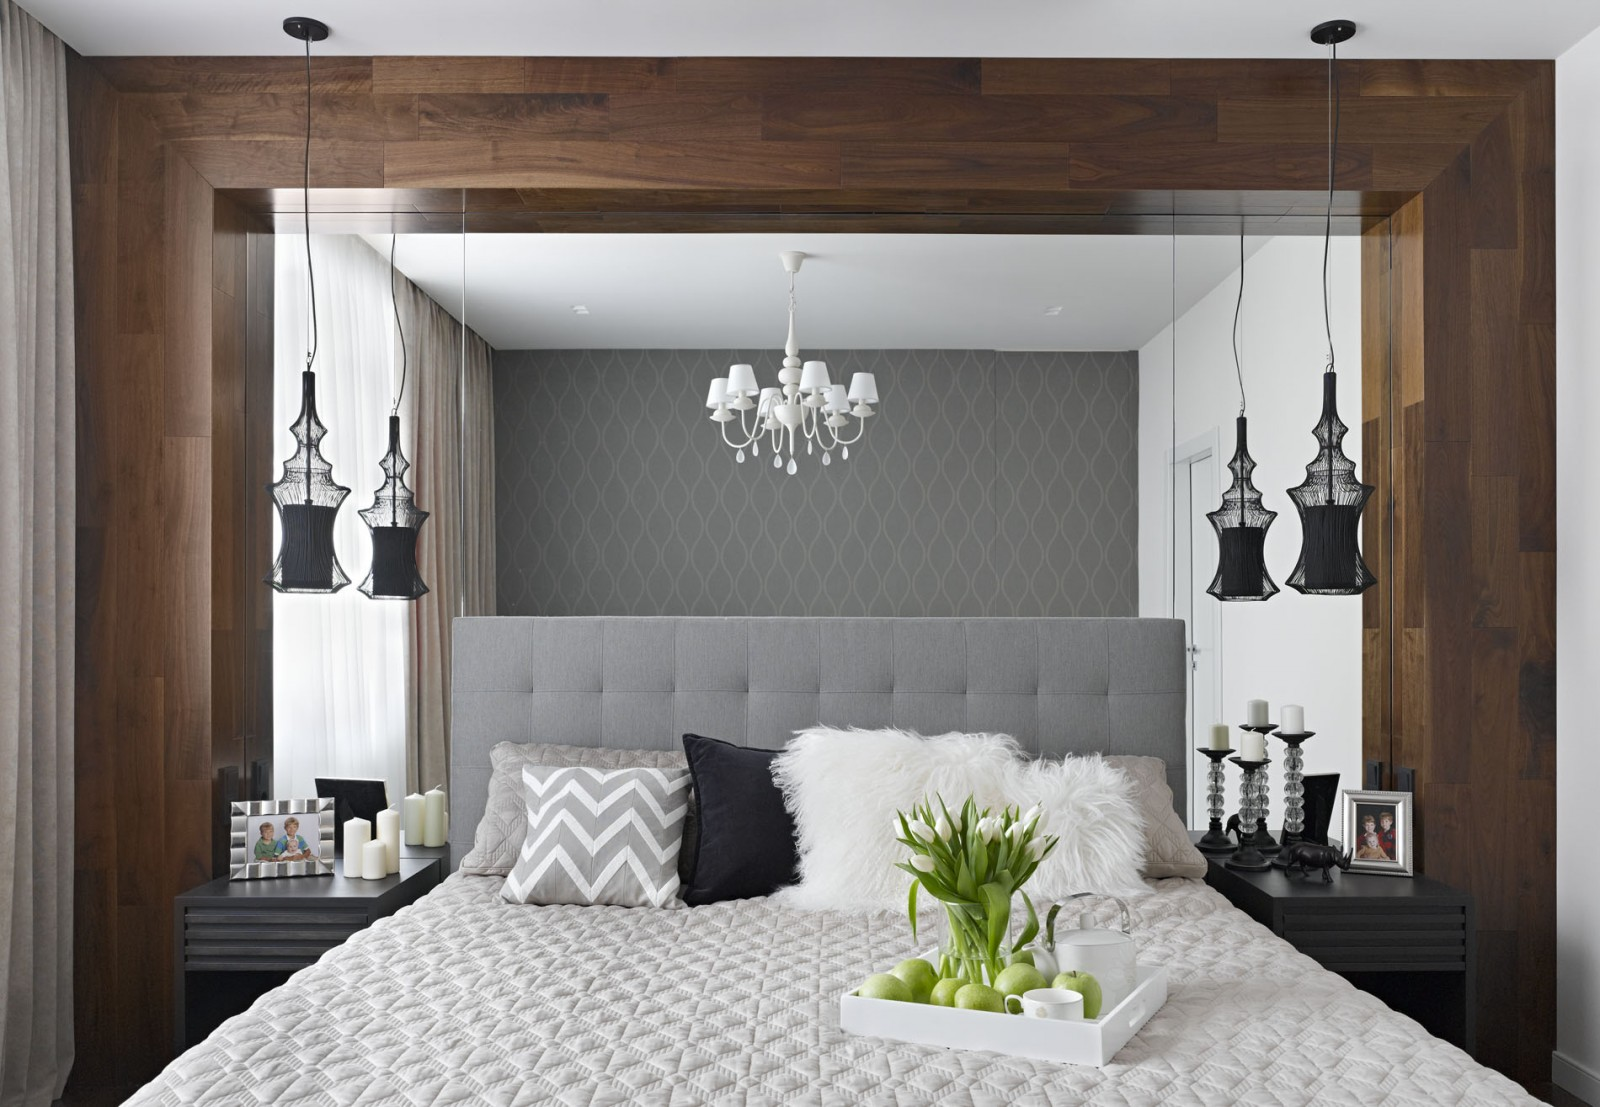 20 Small Bedroom Ideas That Will Leave You Speechless ... on Small Bedroom Ideas  id=95726